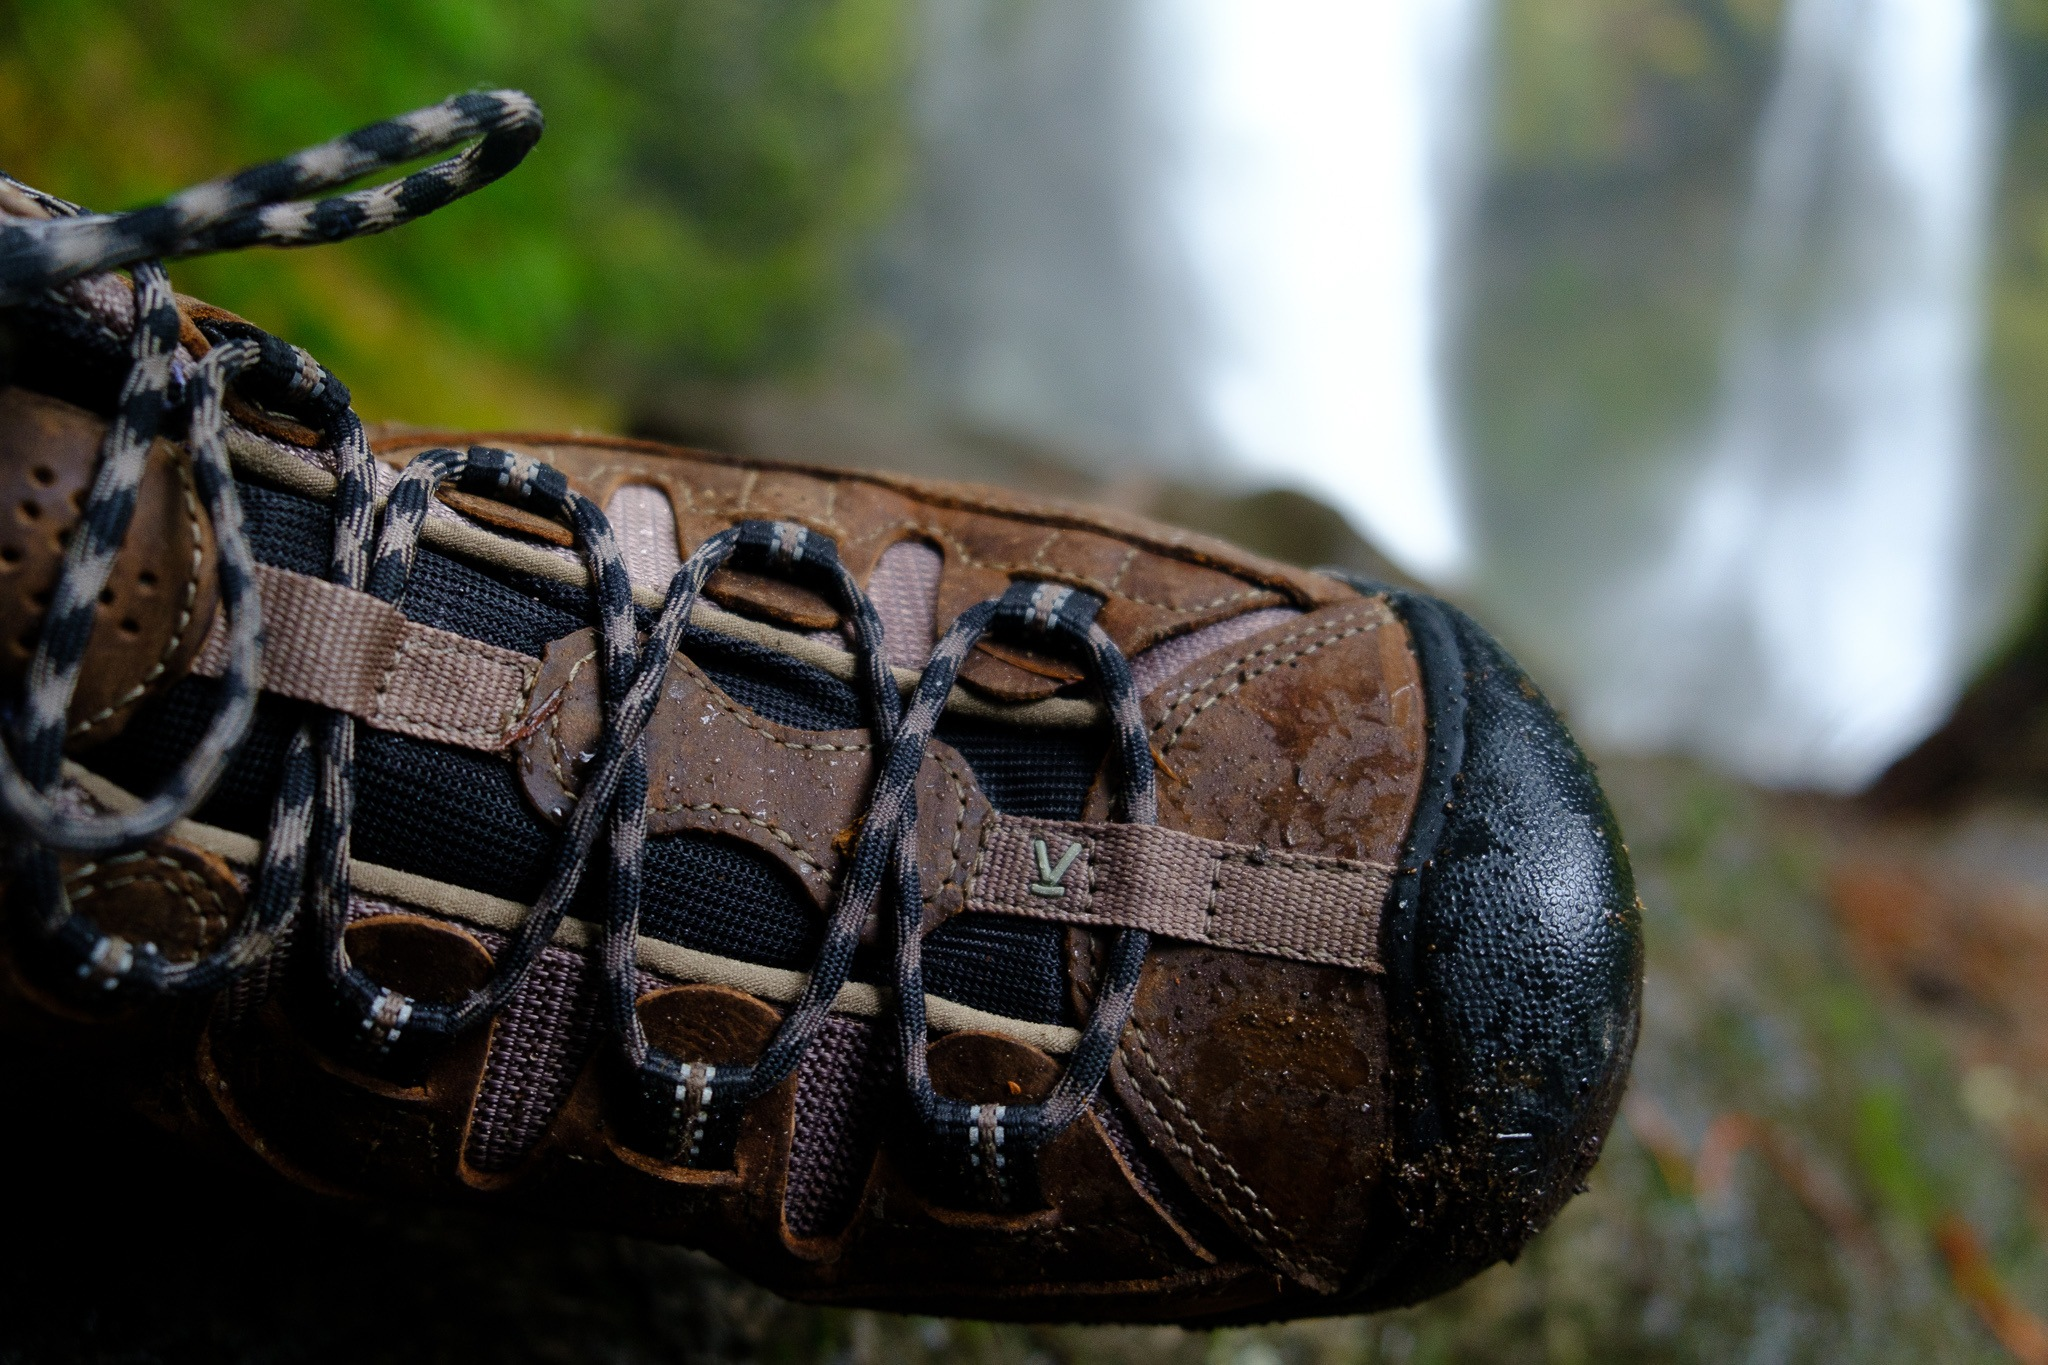 keen hiking boots review